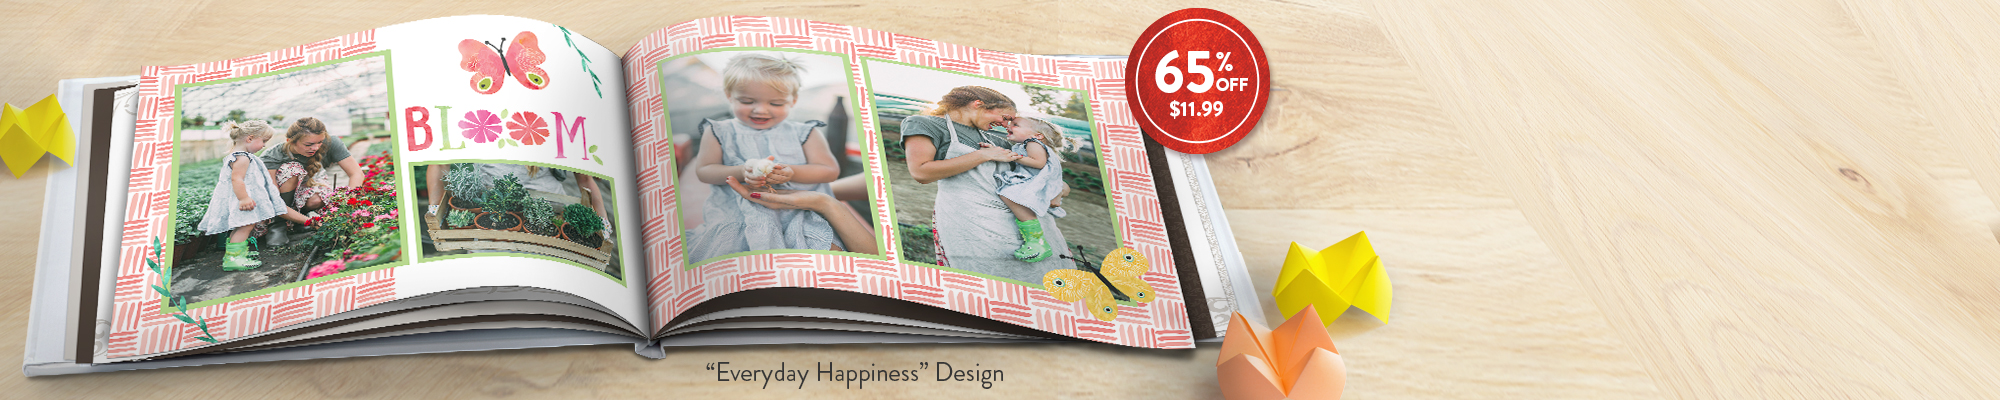 Photo Books Bring home a best seller! Save 65% on our 8x11 Hardcover Photo Book, regularly $34.99, now $11.99! Use code MOMBOOK